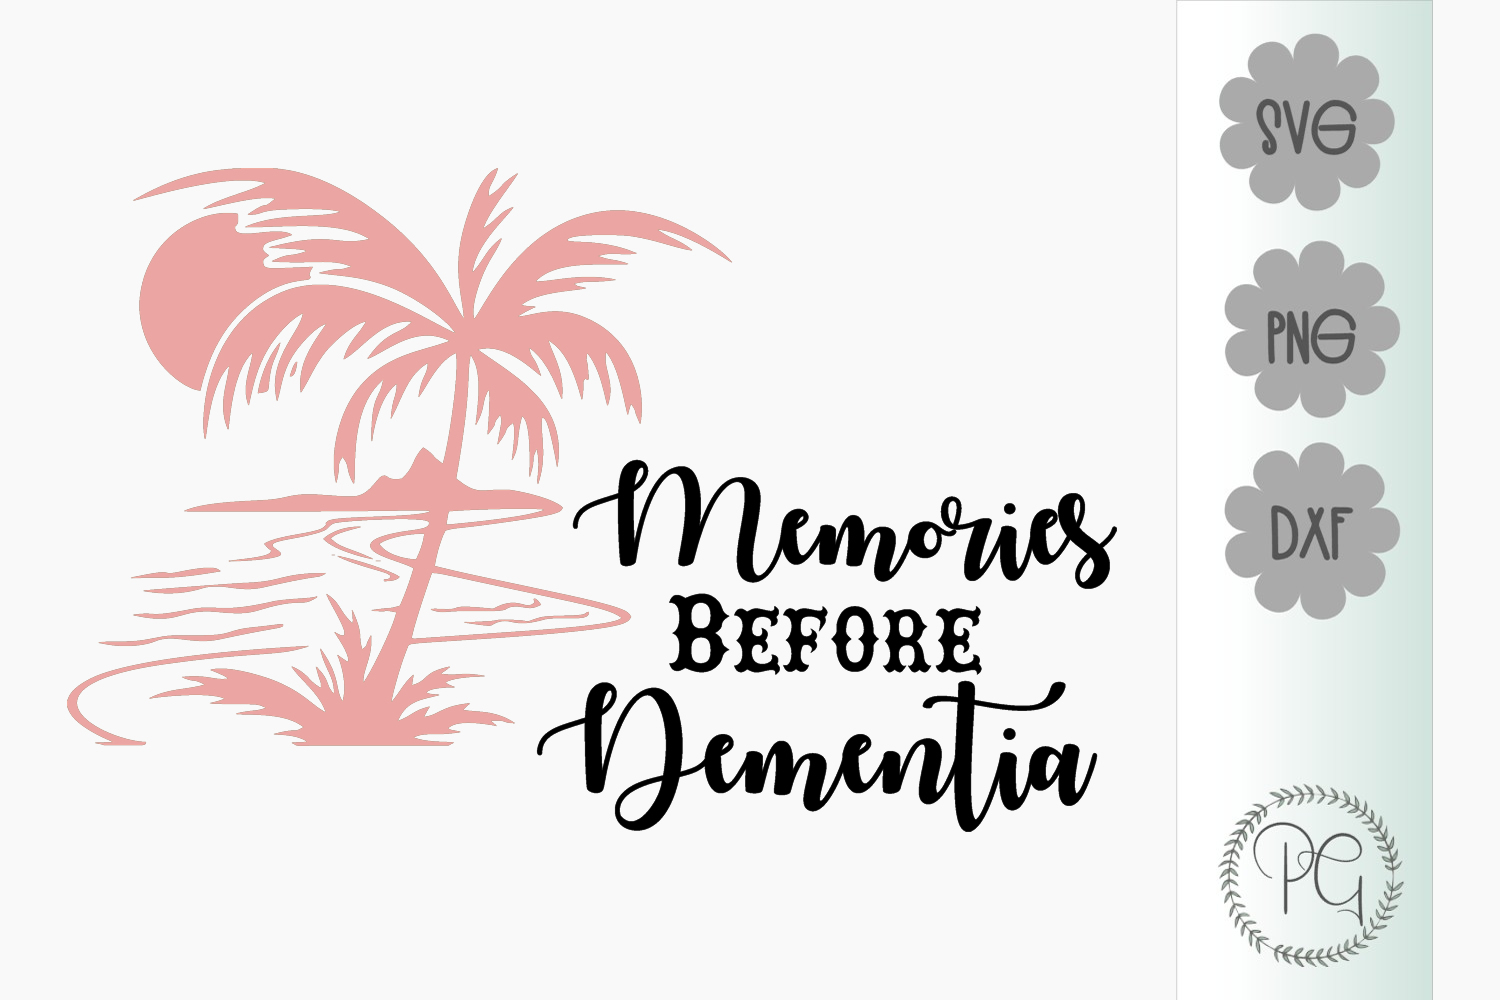 Memories Before Dementia SVG PNG DXF example image 2